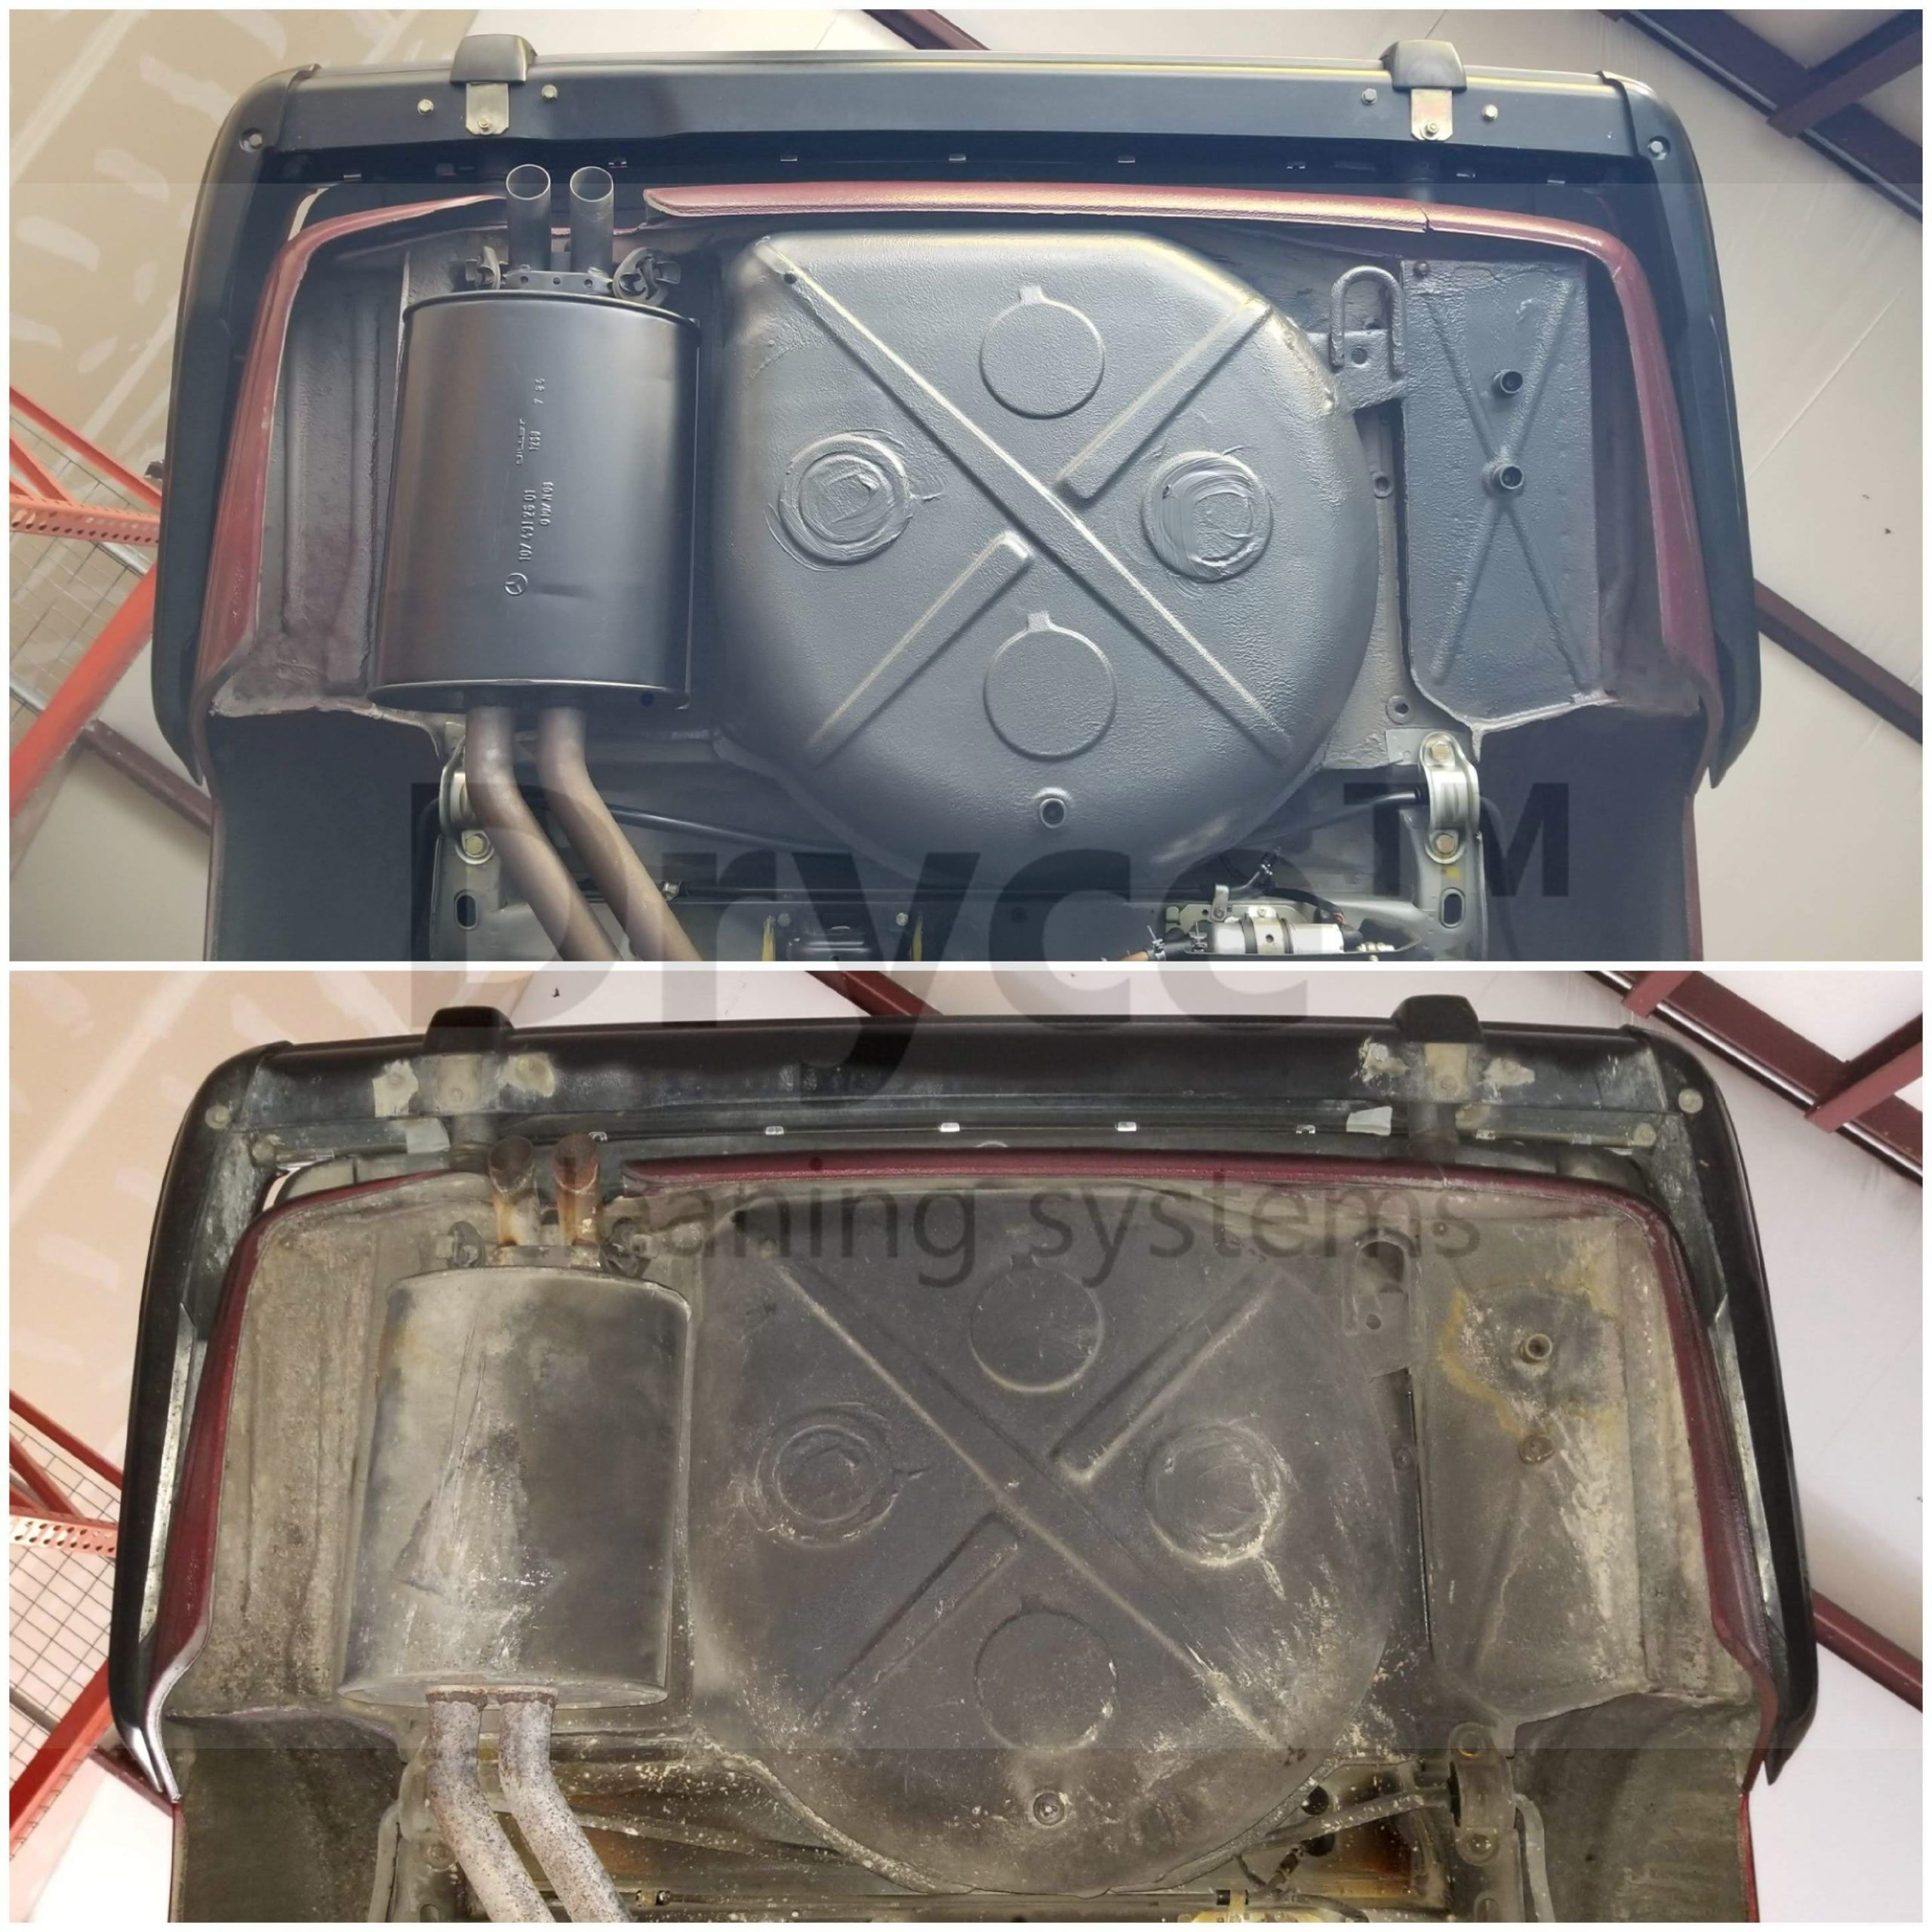 Before and after cleaning and repairing